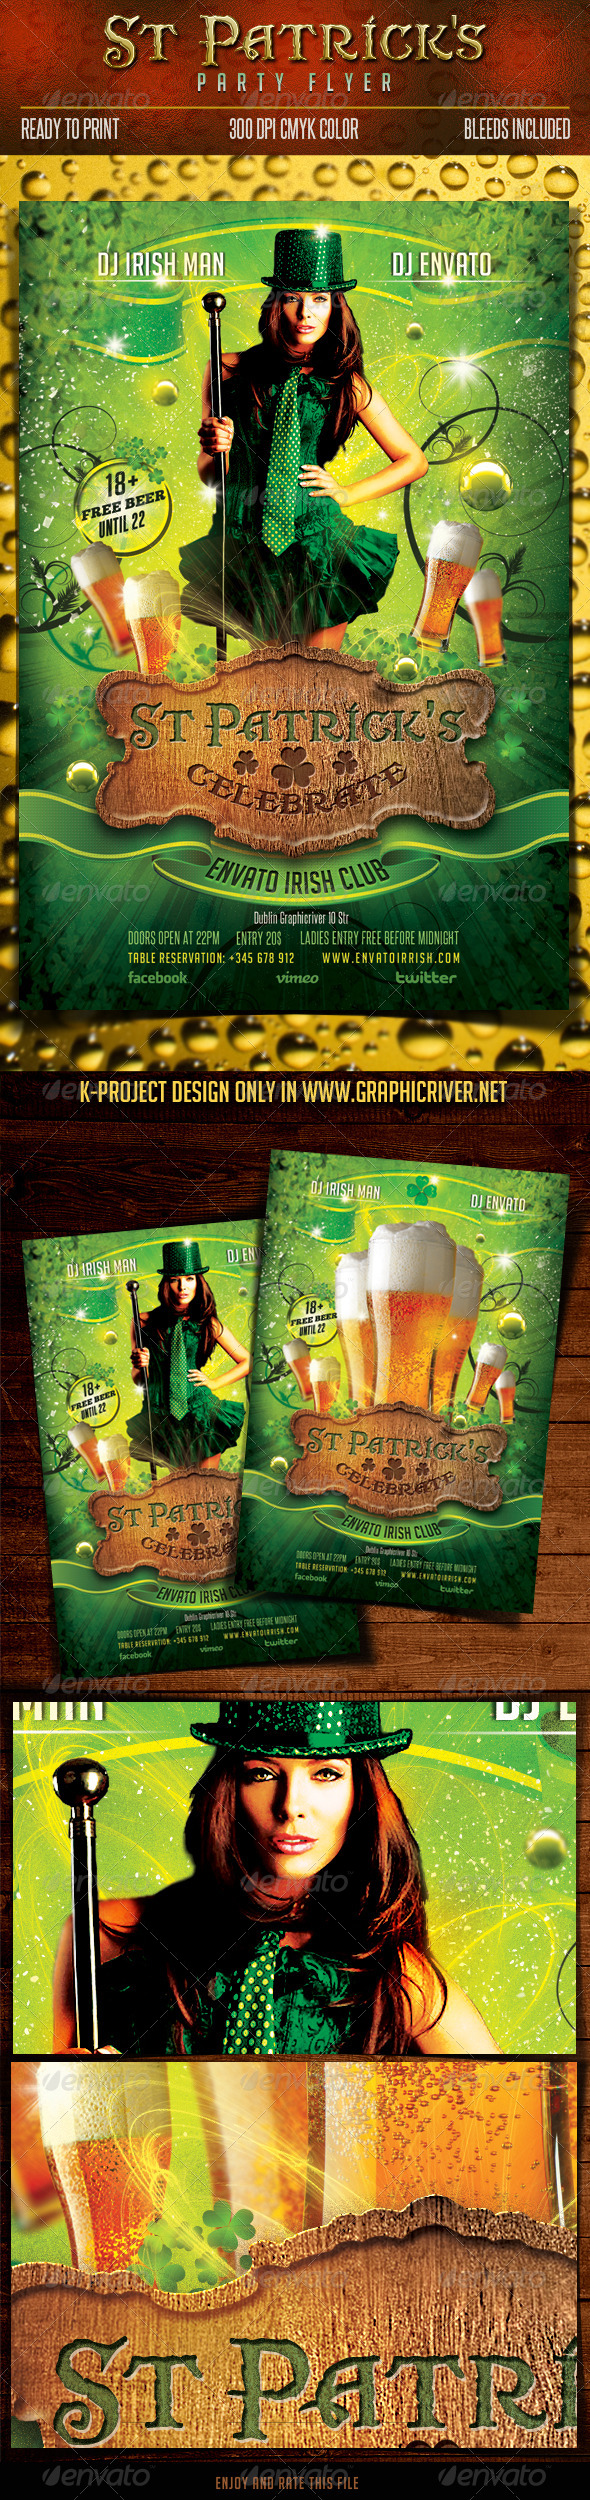 Saint Patrick Party Flyer - Clubs & Parties Events